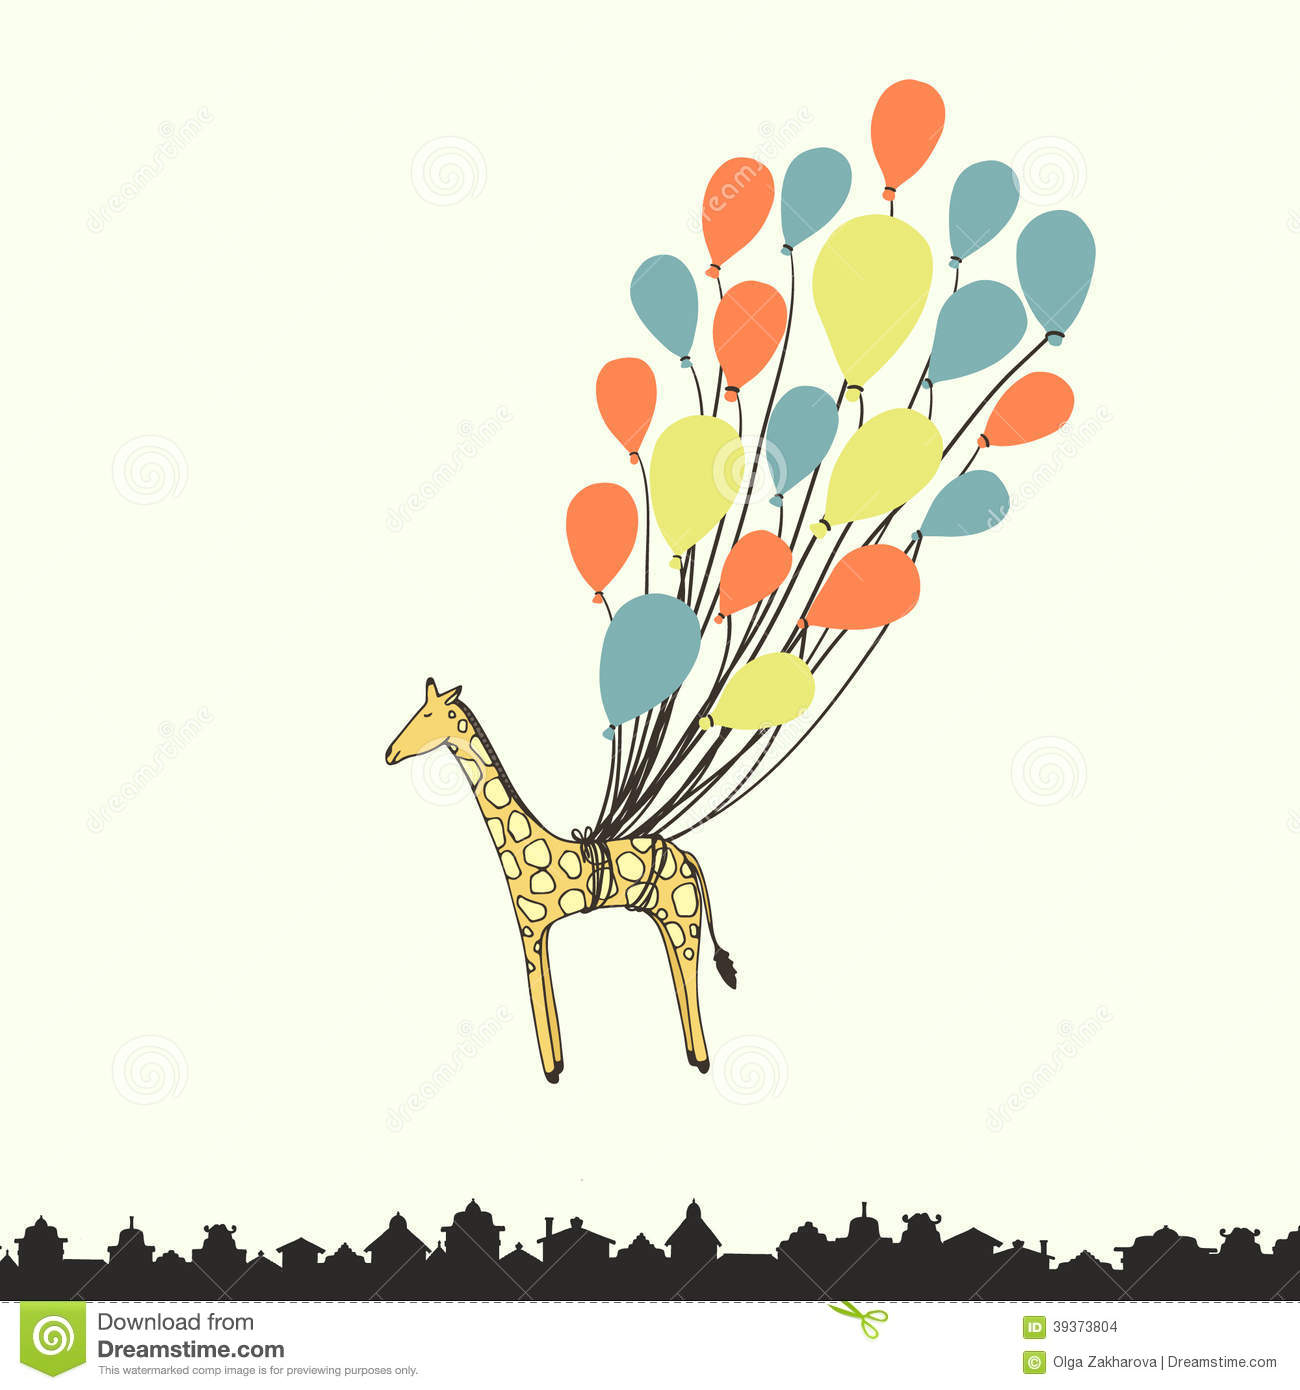 Cute Hand Drawn Giraffe Flying On The Balloons Perfect